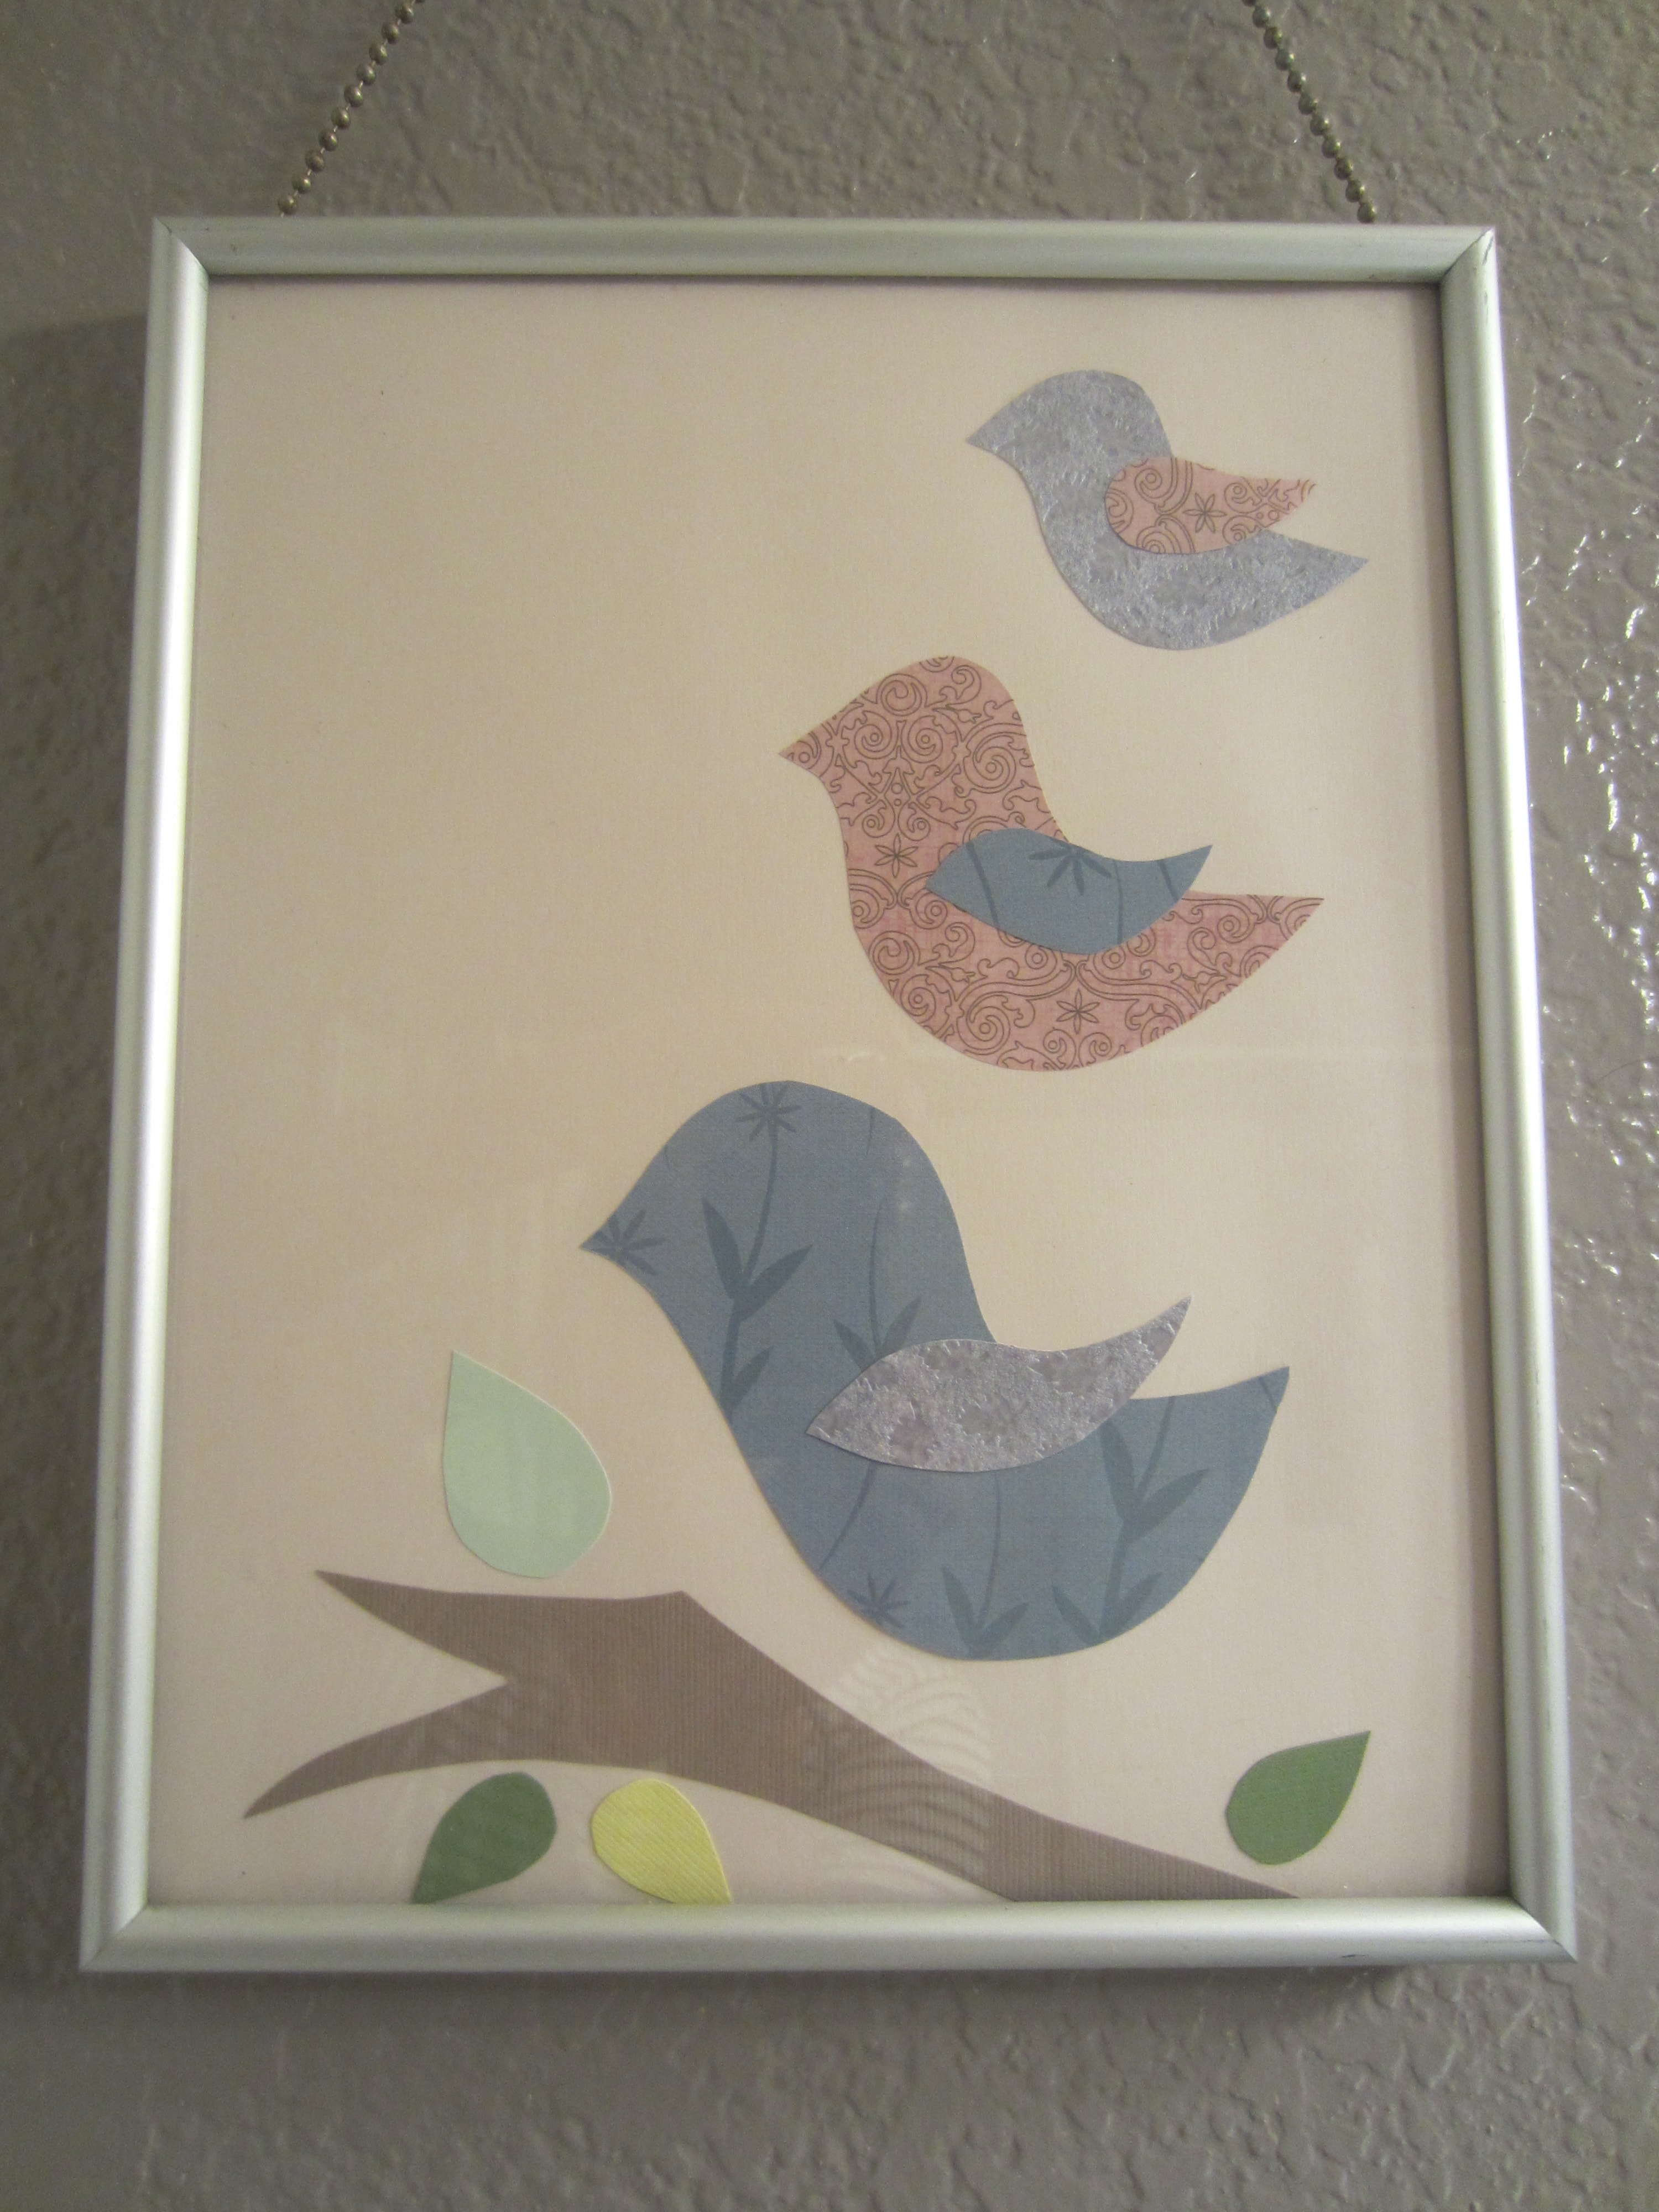 Do it yourself wall art diy inspired easy do it yourself wall art for a nursery or kids room solutioingenieria Images